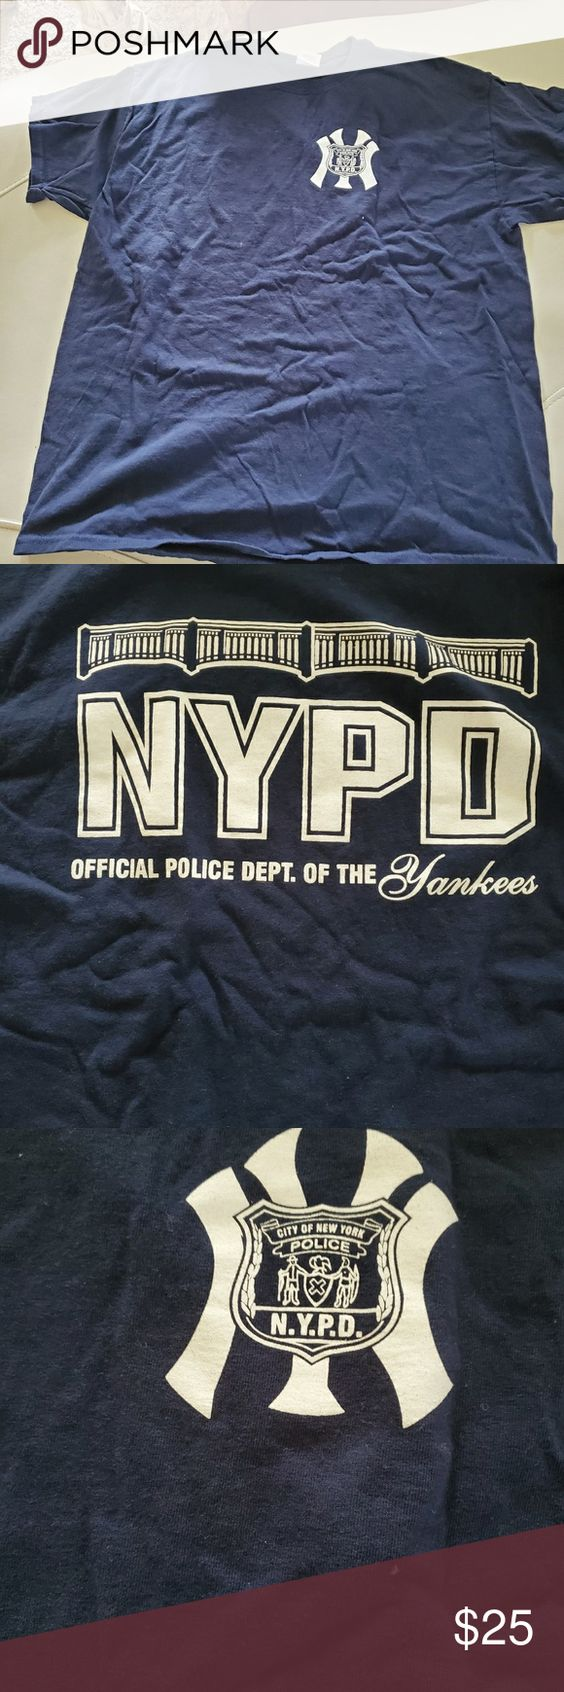 Nypd Ny Yankees Two Awesome Nyc Great Icons Xl Nypd Yankees Tee Shirt Men S Navy Xl Rare These 2 Nyc Institutions Come Together In One Ny Yankees Yankees Nypd